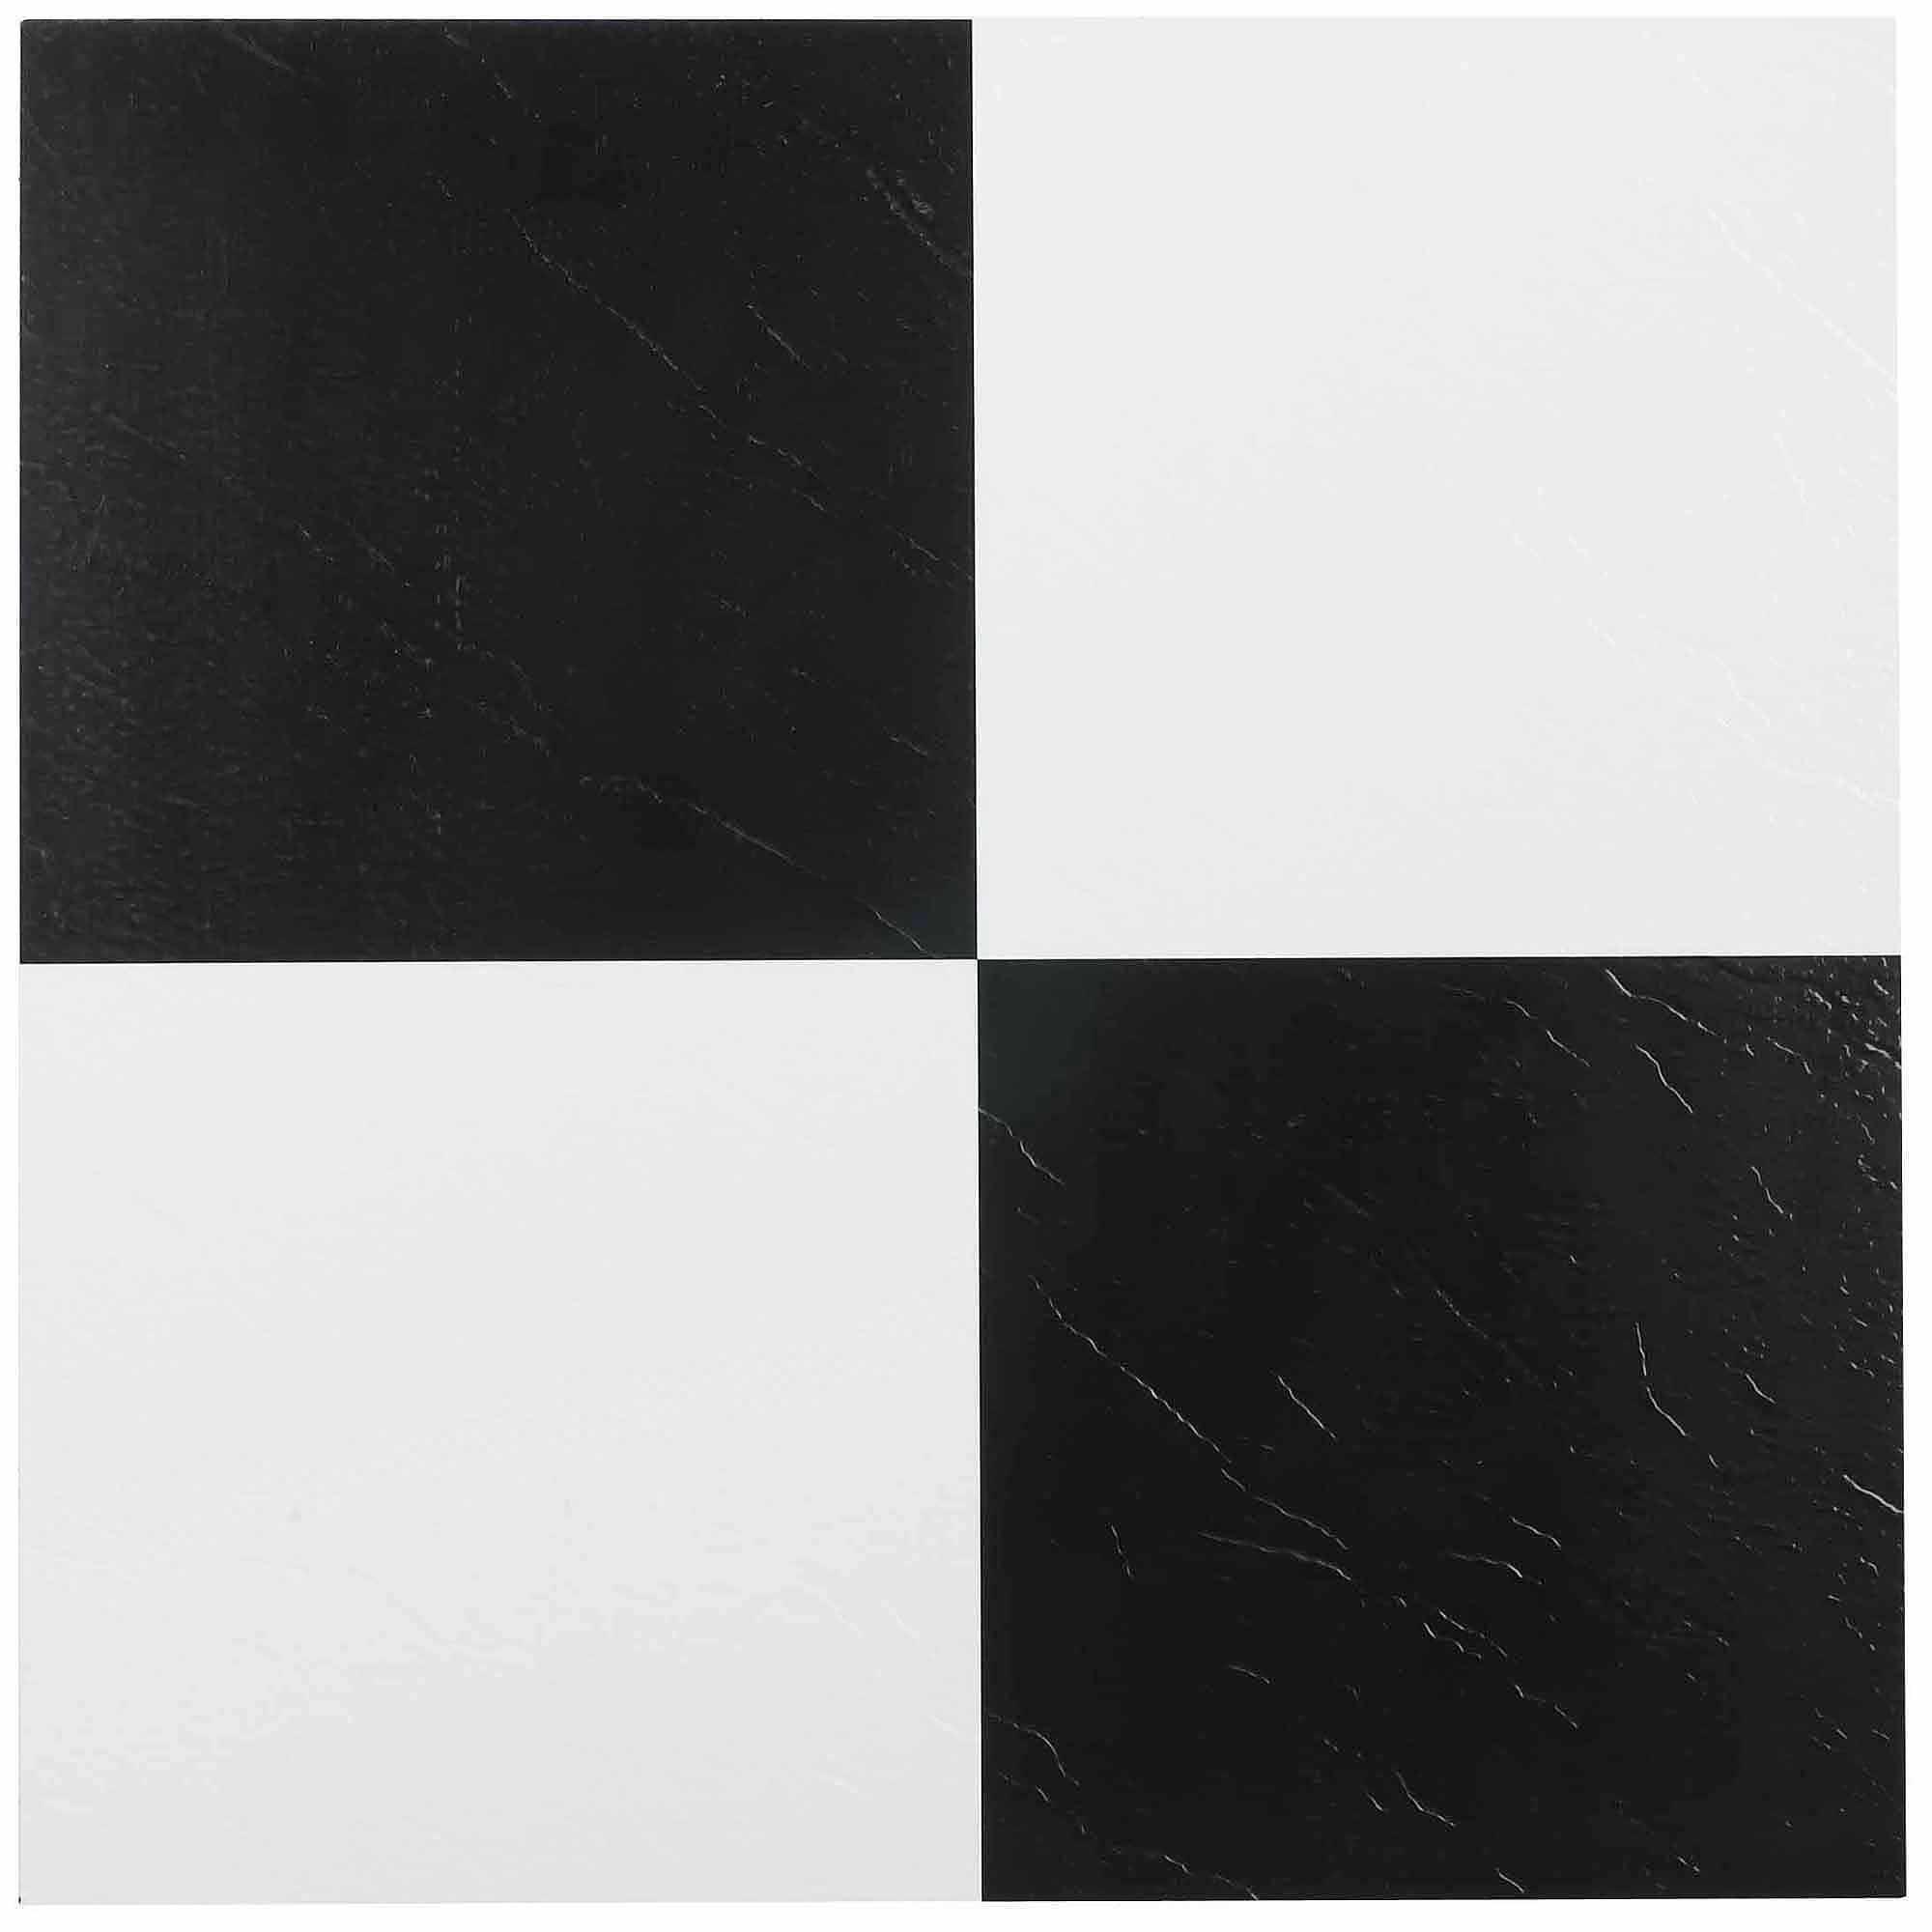 Self adhesive floor tiles nexus black white 12x12 self adhesive vinyl floor tile 20 tiles20 sq dailygadgetfo Image collections